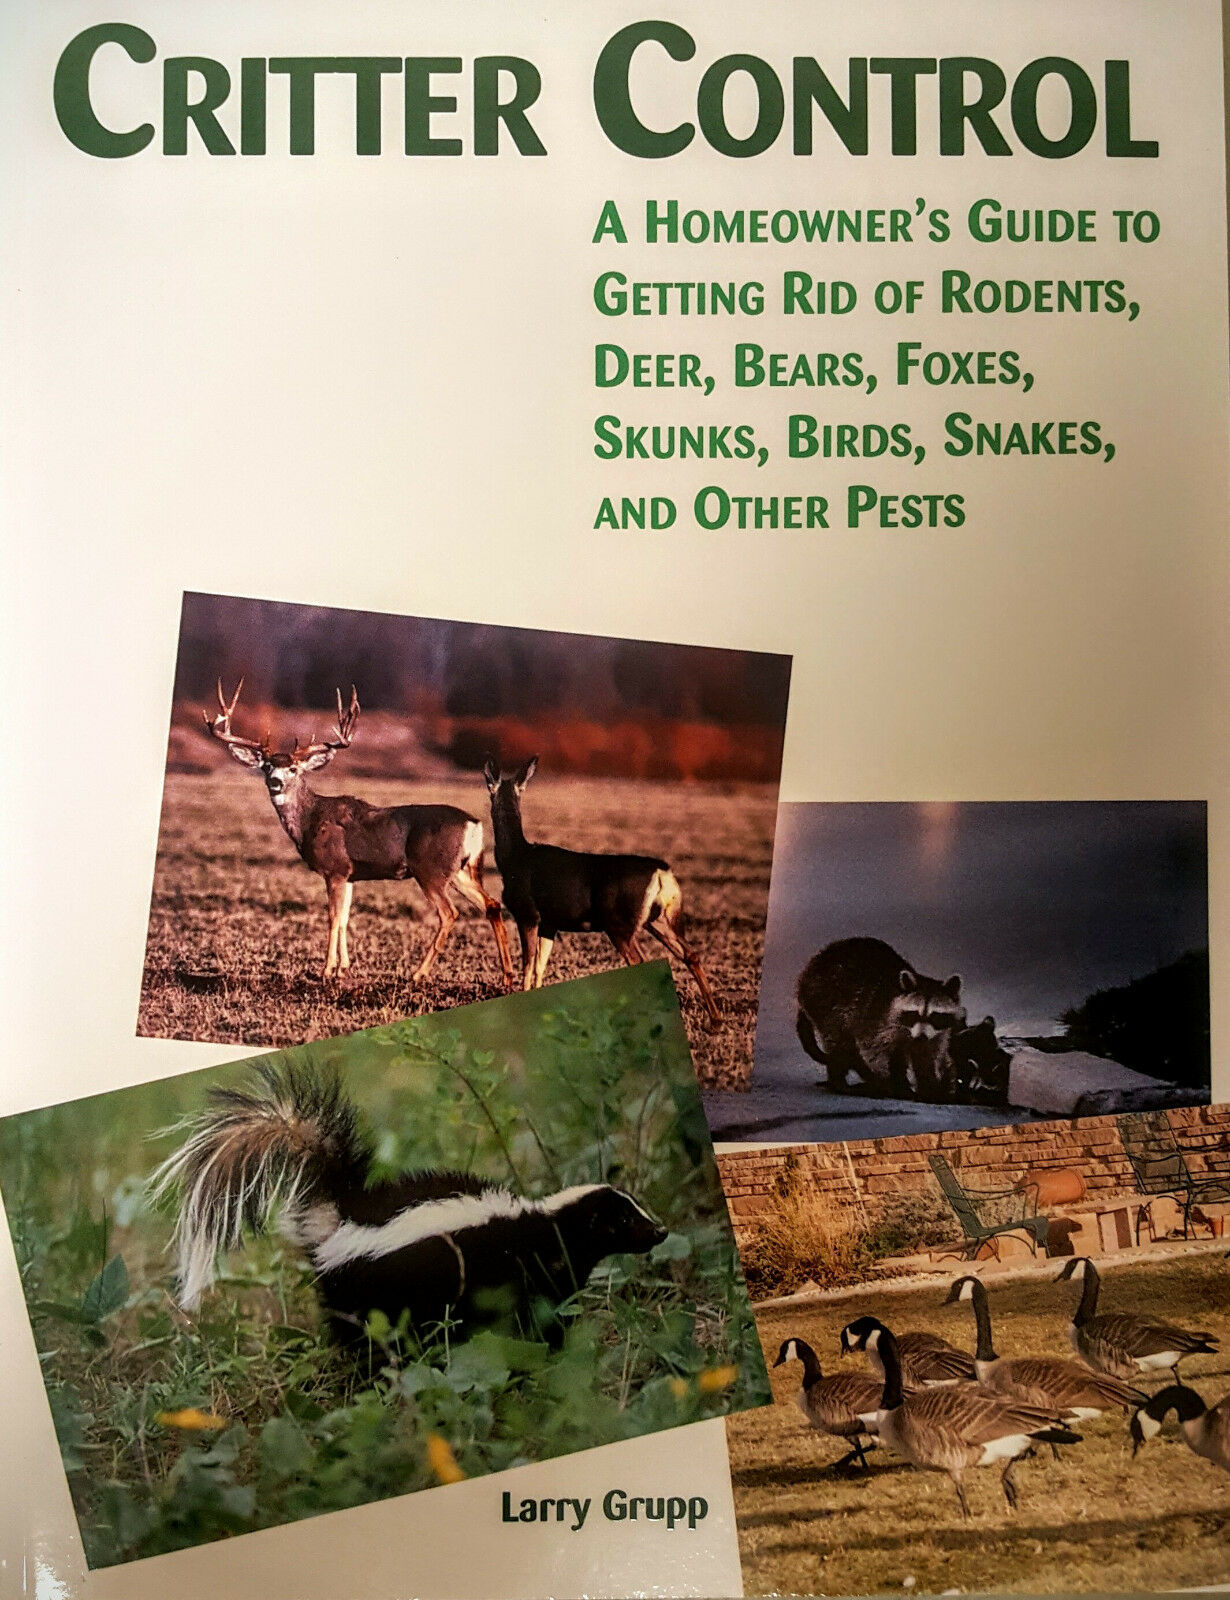 Critter Control Homeowner's Guide to Getting Rid of Rodents other Pests Book